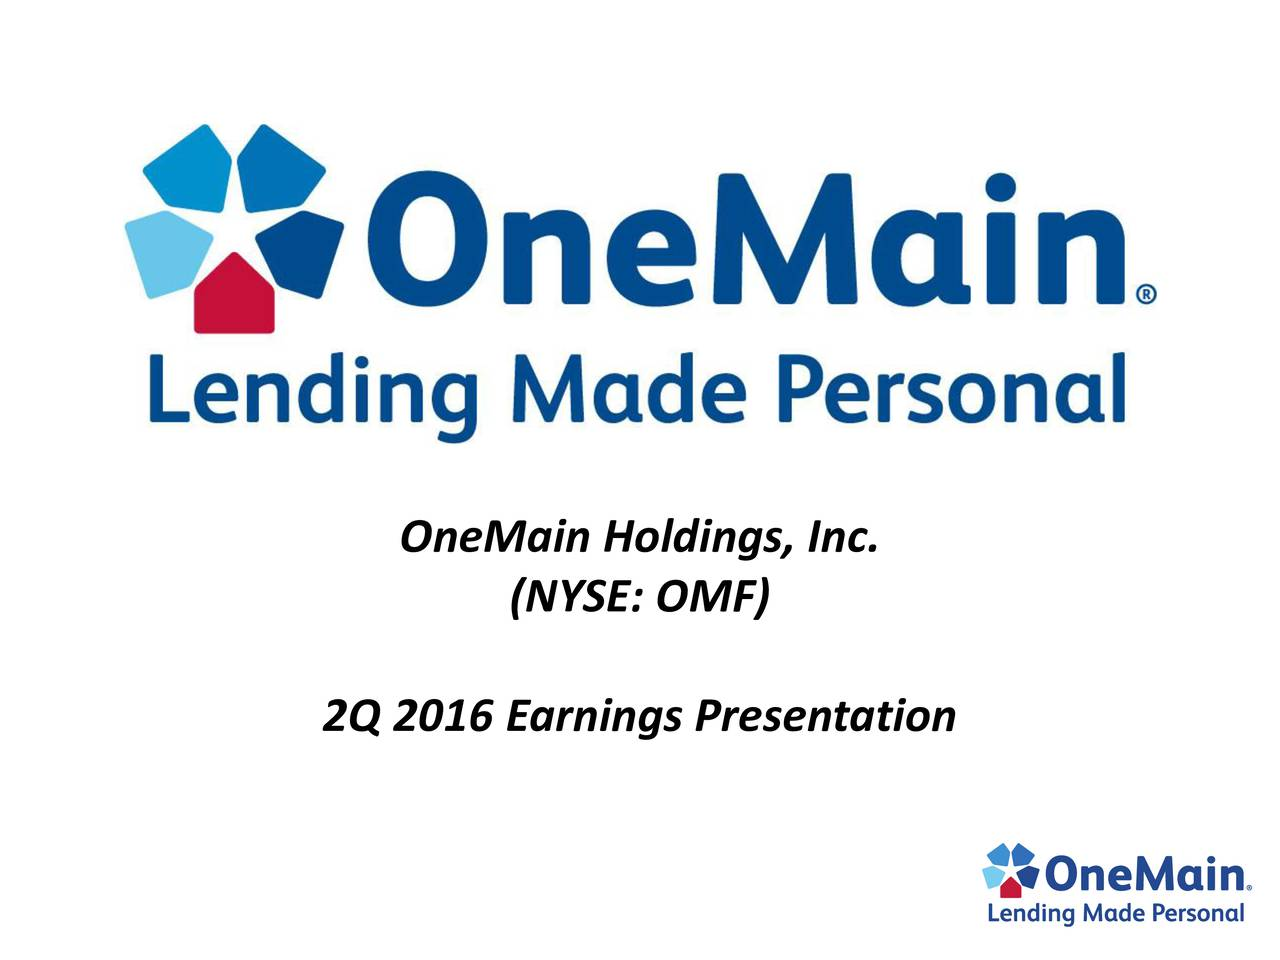 (NYSE: OMF) 2Q 2016 Earnings Presentation